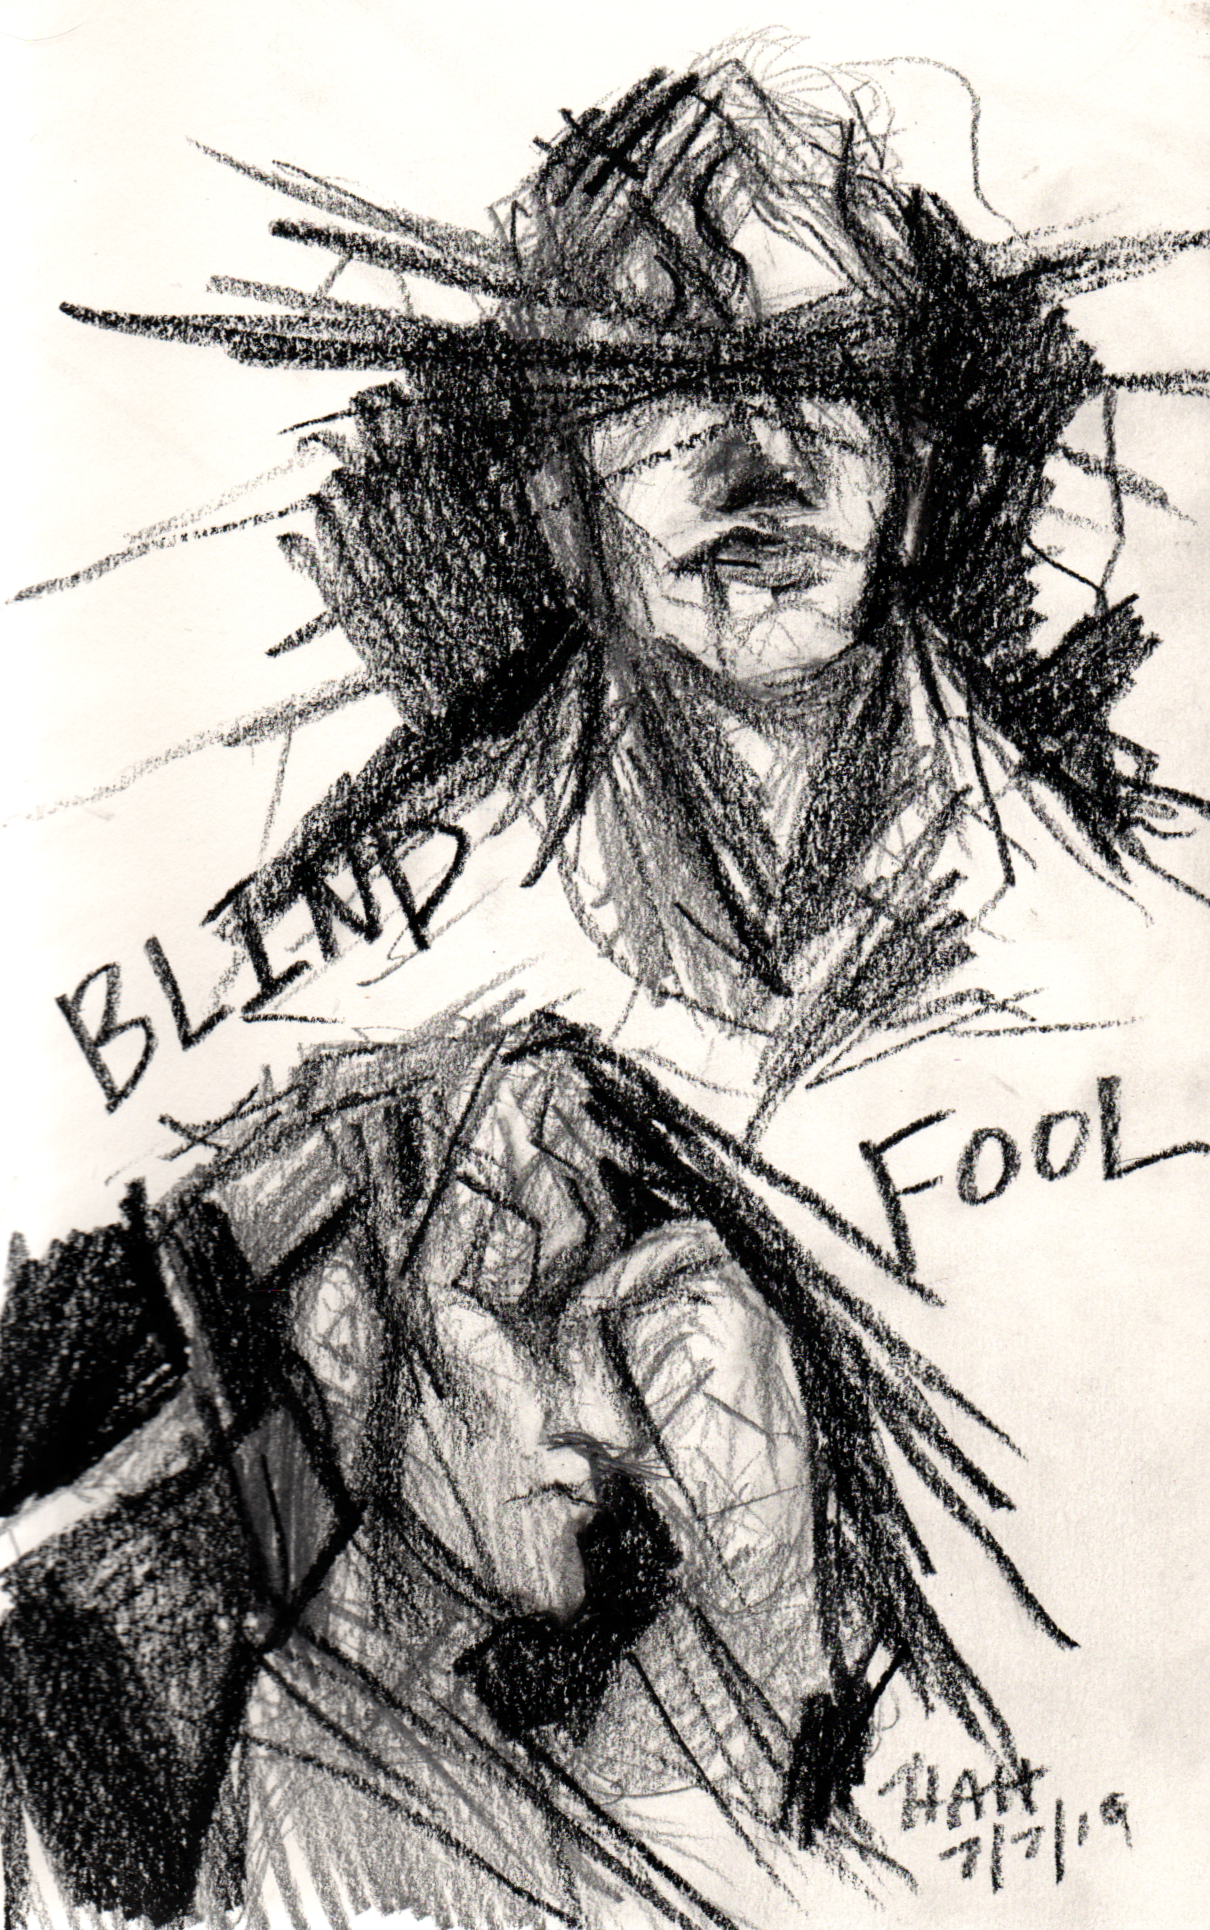 Blind_fool_tetch.png